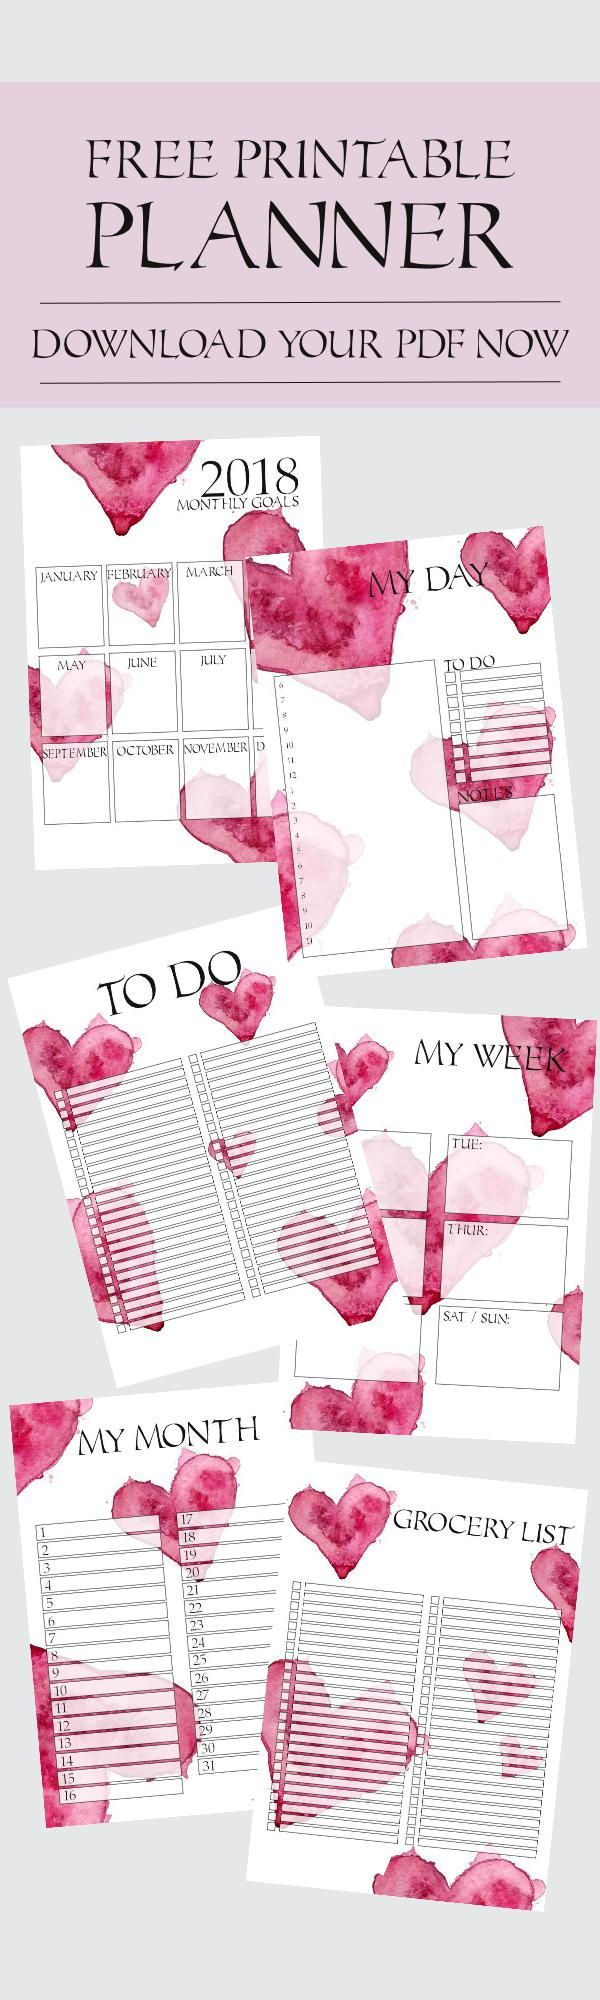 Free Printable Planner, 2018. Download your pdf now. Print at home. Aquarelle Heart design.